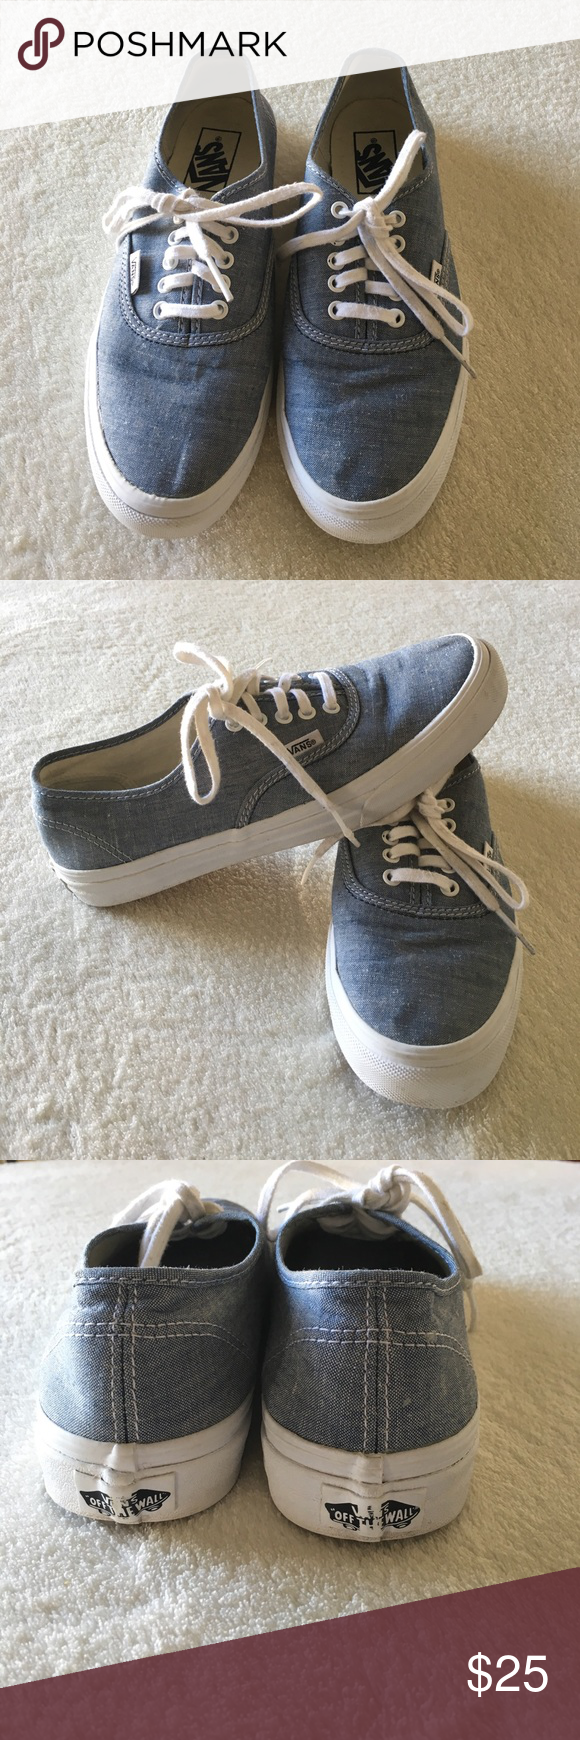 Men or Women {VANS} Light blue denim like material. Brand New without box. ✨Feel free to make an offer! ✨ Vans Shoes